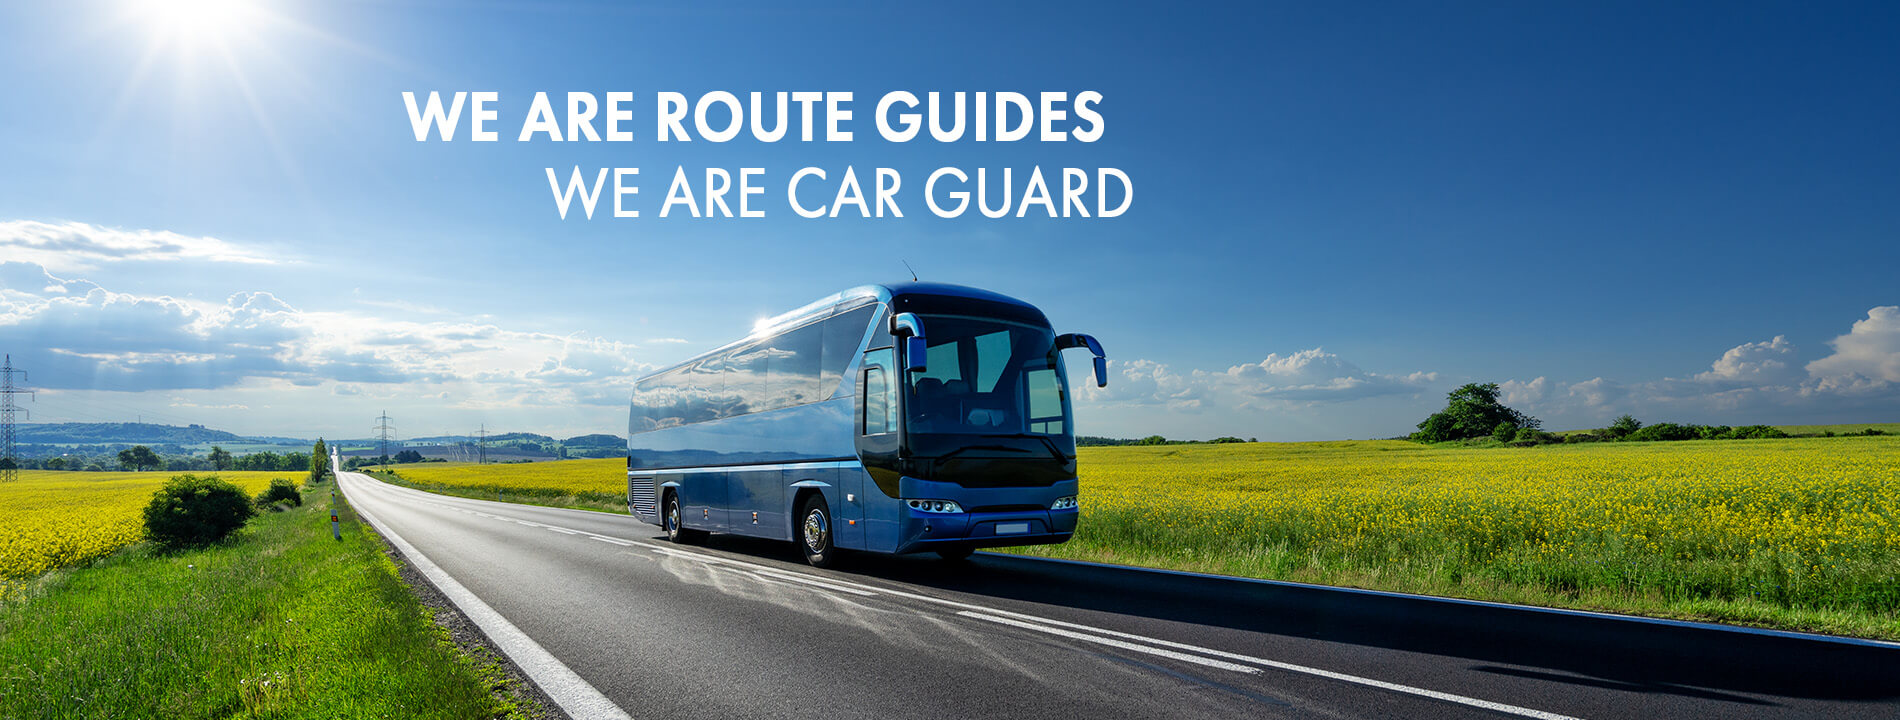 We are route guides - We are Car Guard